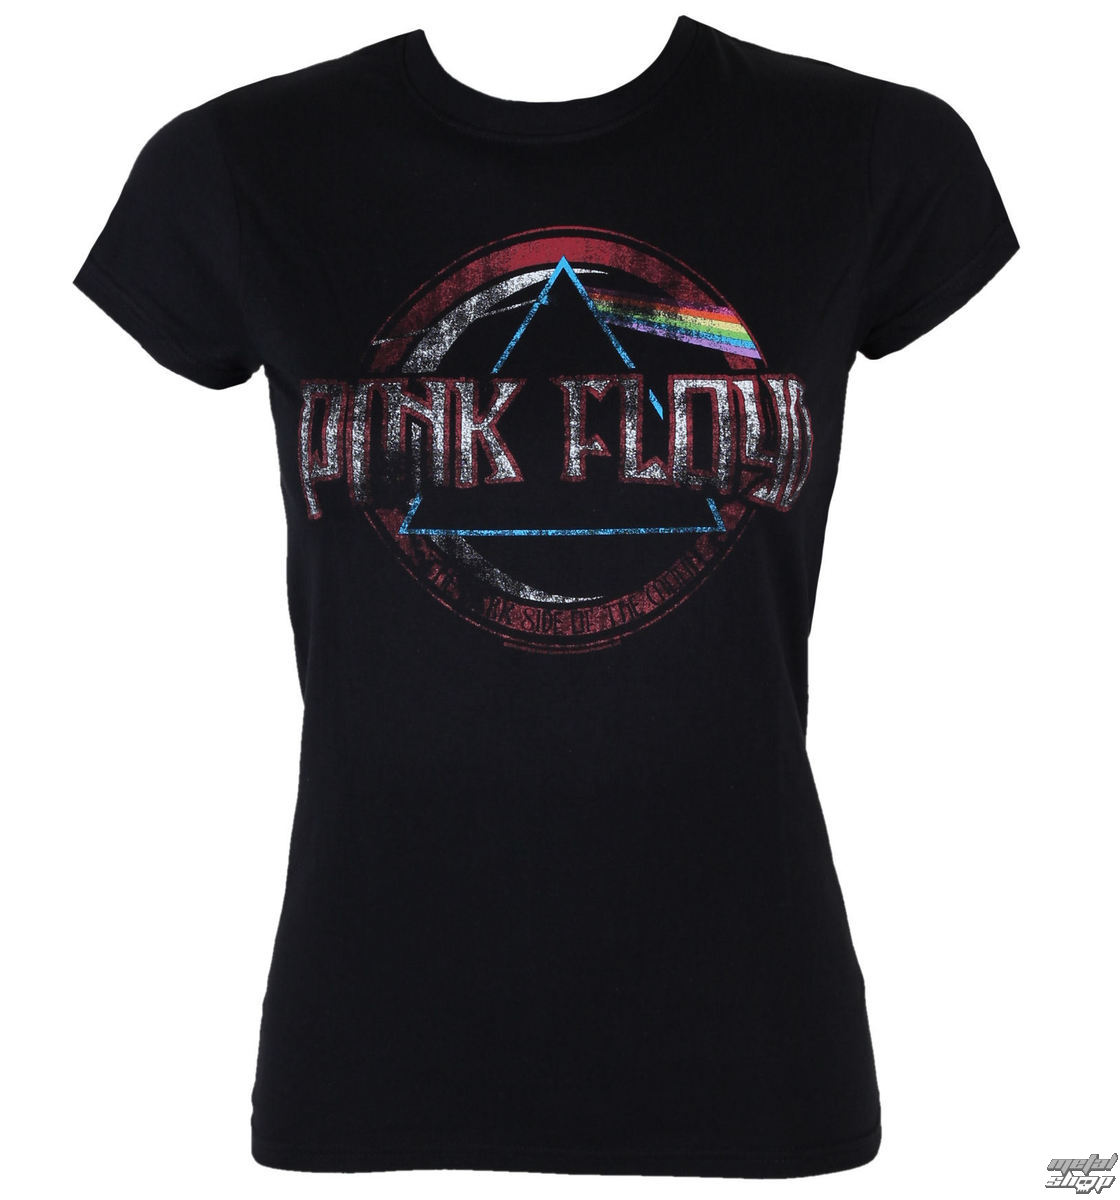 tričko dámské PINK FLOYD - Dark side of the moon new logo - BLK - LOW FREQUENCY - PFGS05001